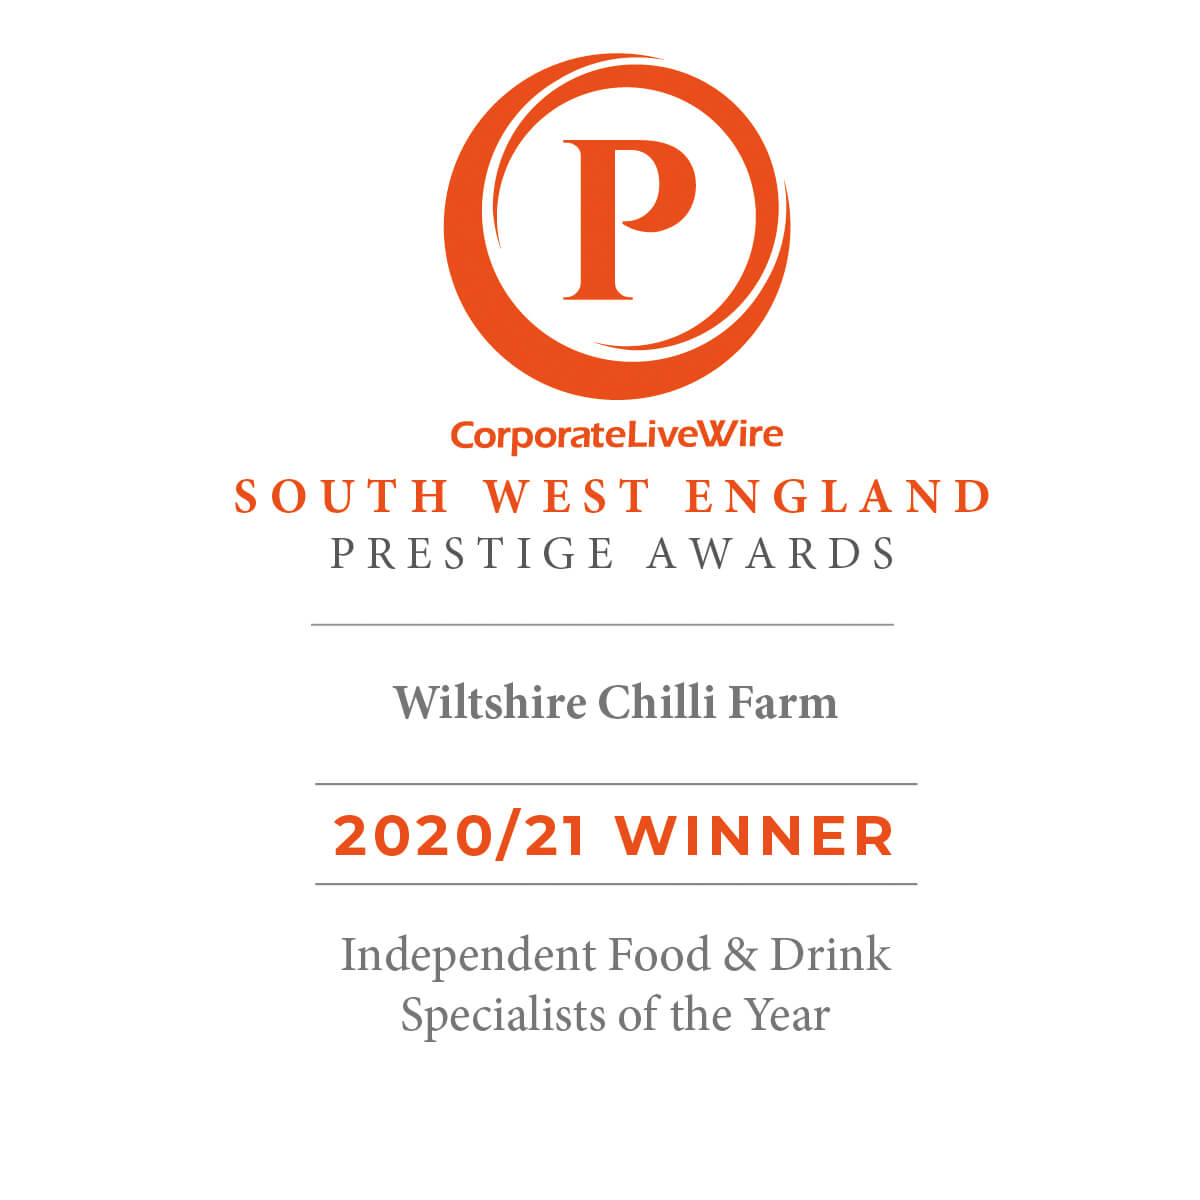 Wiltshire Chilli Farm - Independent Food and Drink Specialists of the Year 2021